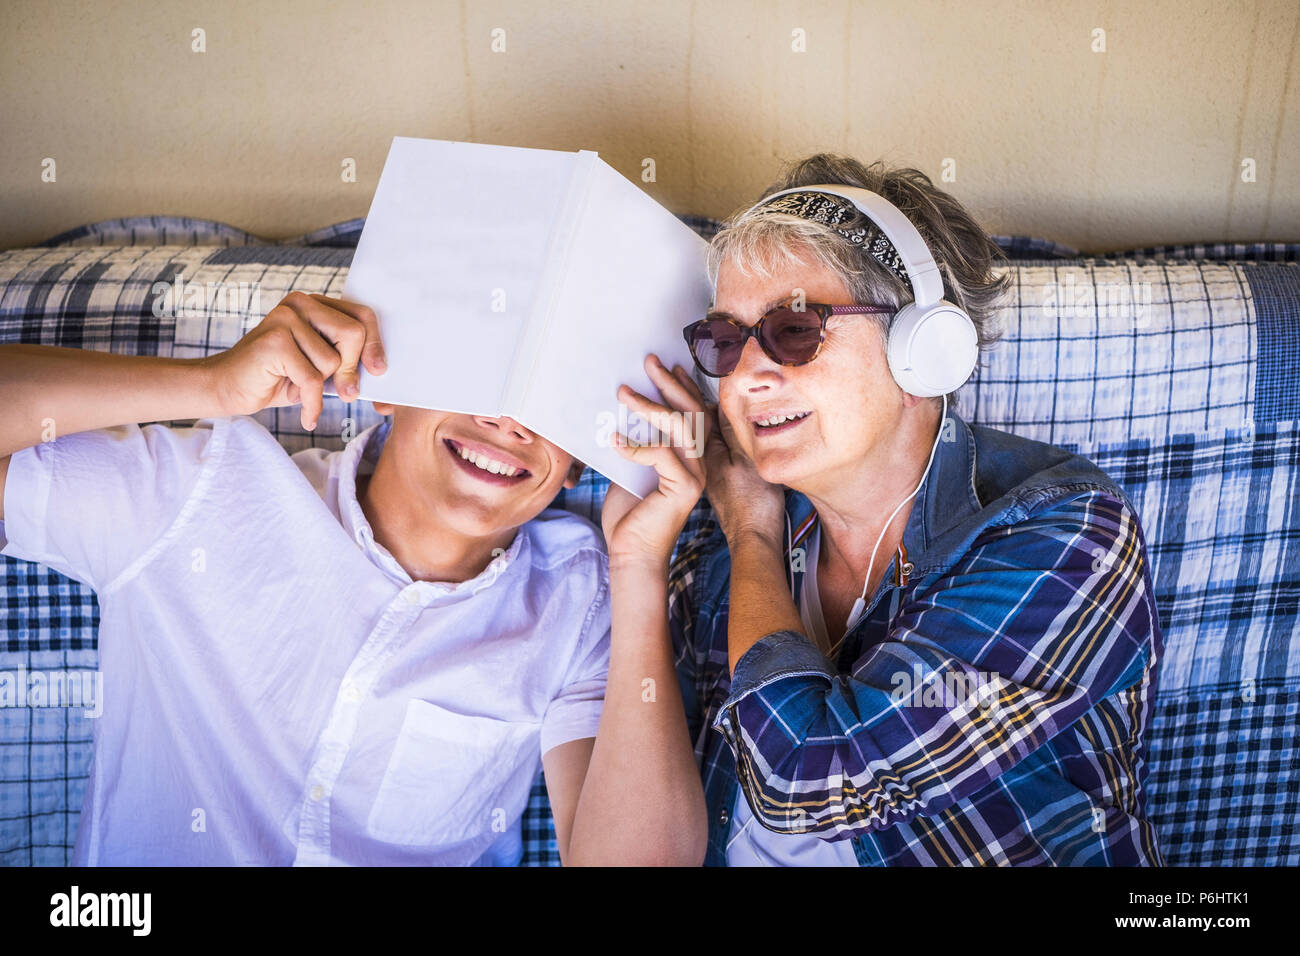 couple of happy people enjoying the summer leisure time together on the terrace outdoor. the young boy don't want to study while the grandmother liste - Stock Image